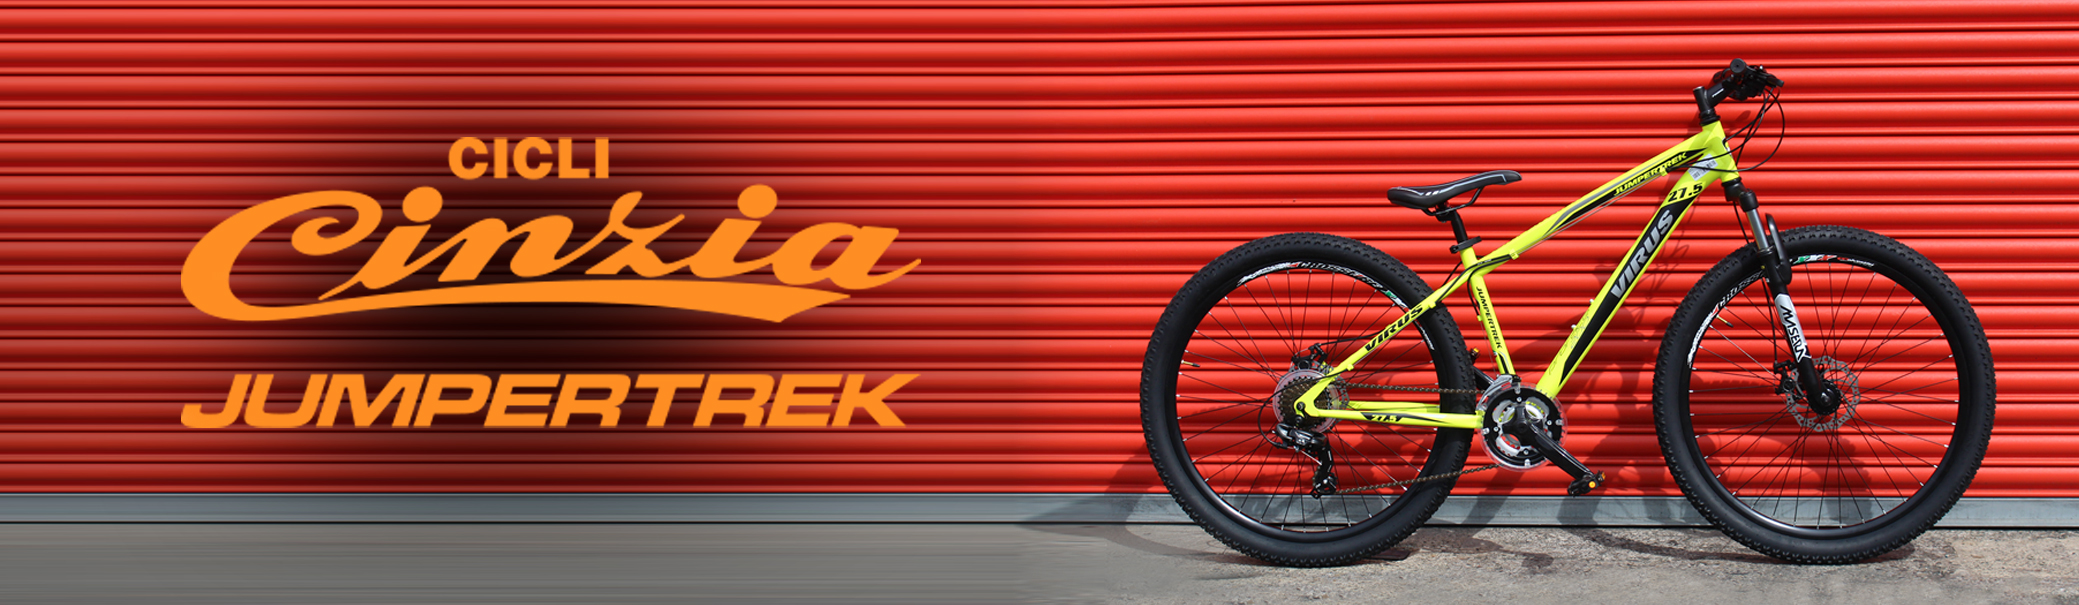 Cicli Cinzia Jumpertrek Virus bike in yellow on a red background